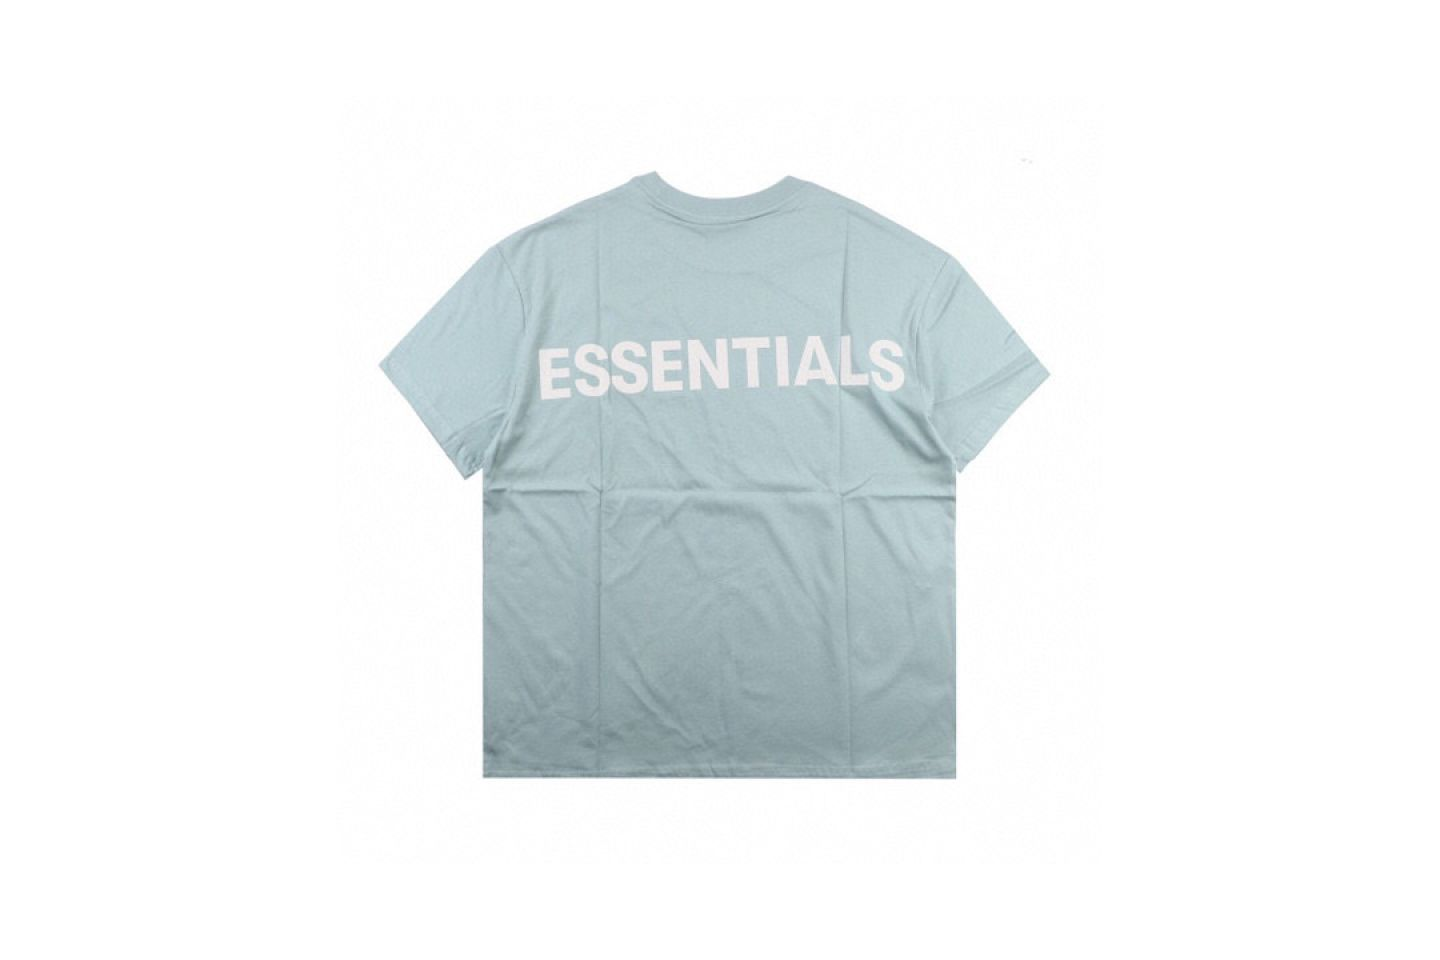 Shirt FEAR OF GOD ESSENTIALS 6 multi-line 3M reflective short-sleeved T-shirt mint 5 fear_of_god_essentials_6_multi_line_3m_reflective_short_sleeved_t_shirt_mint__5